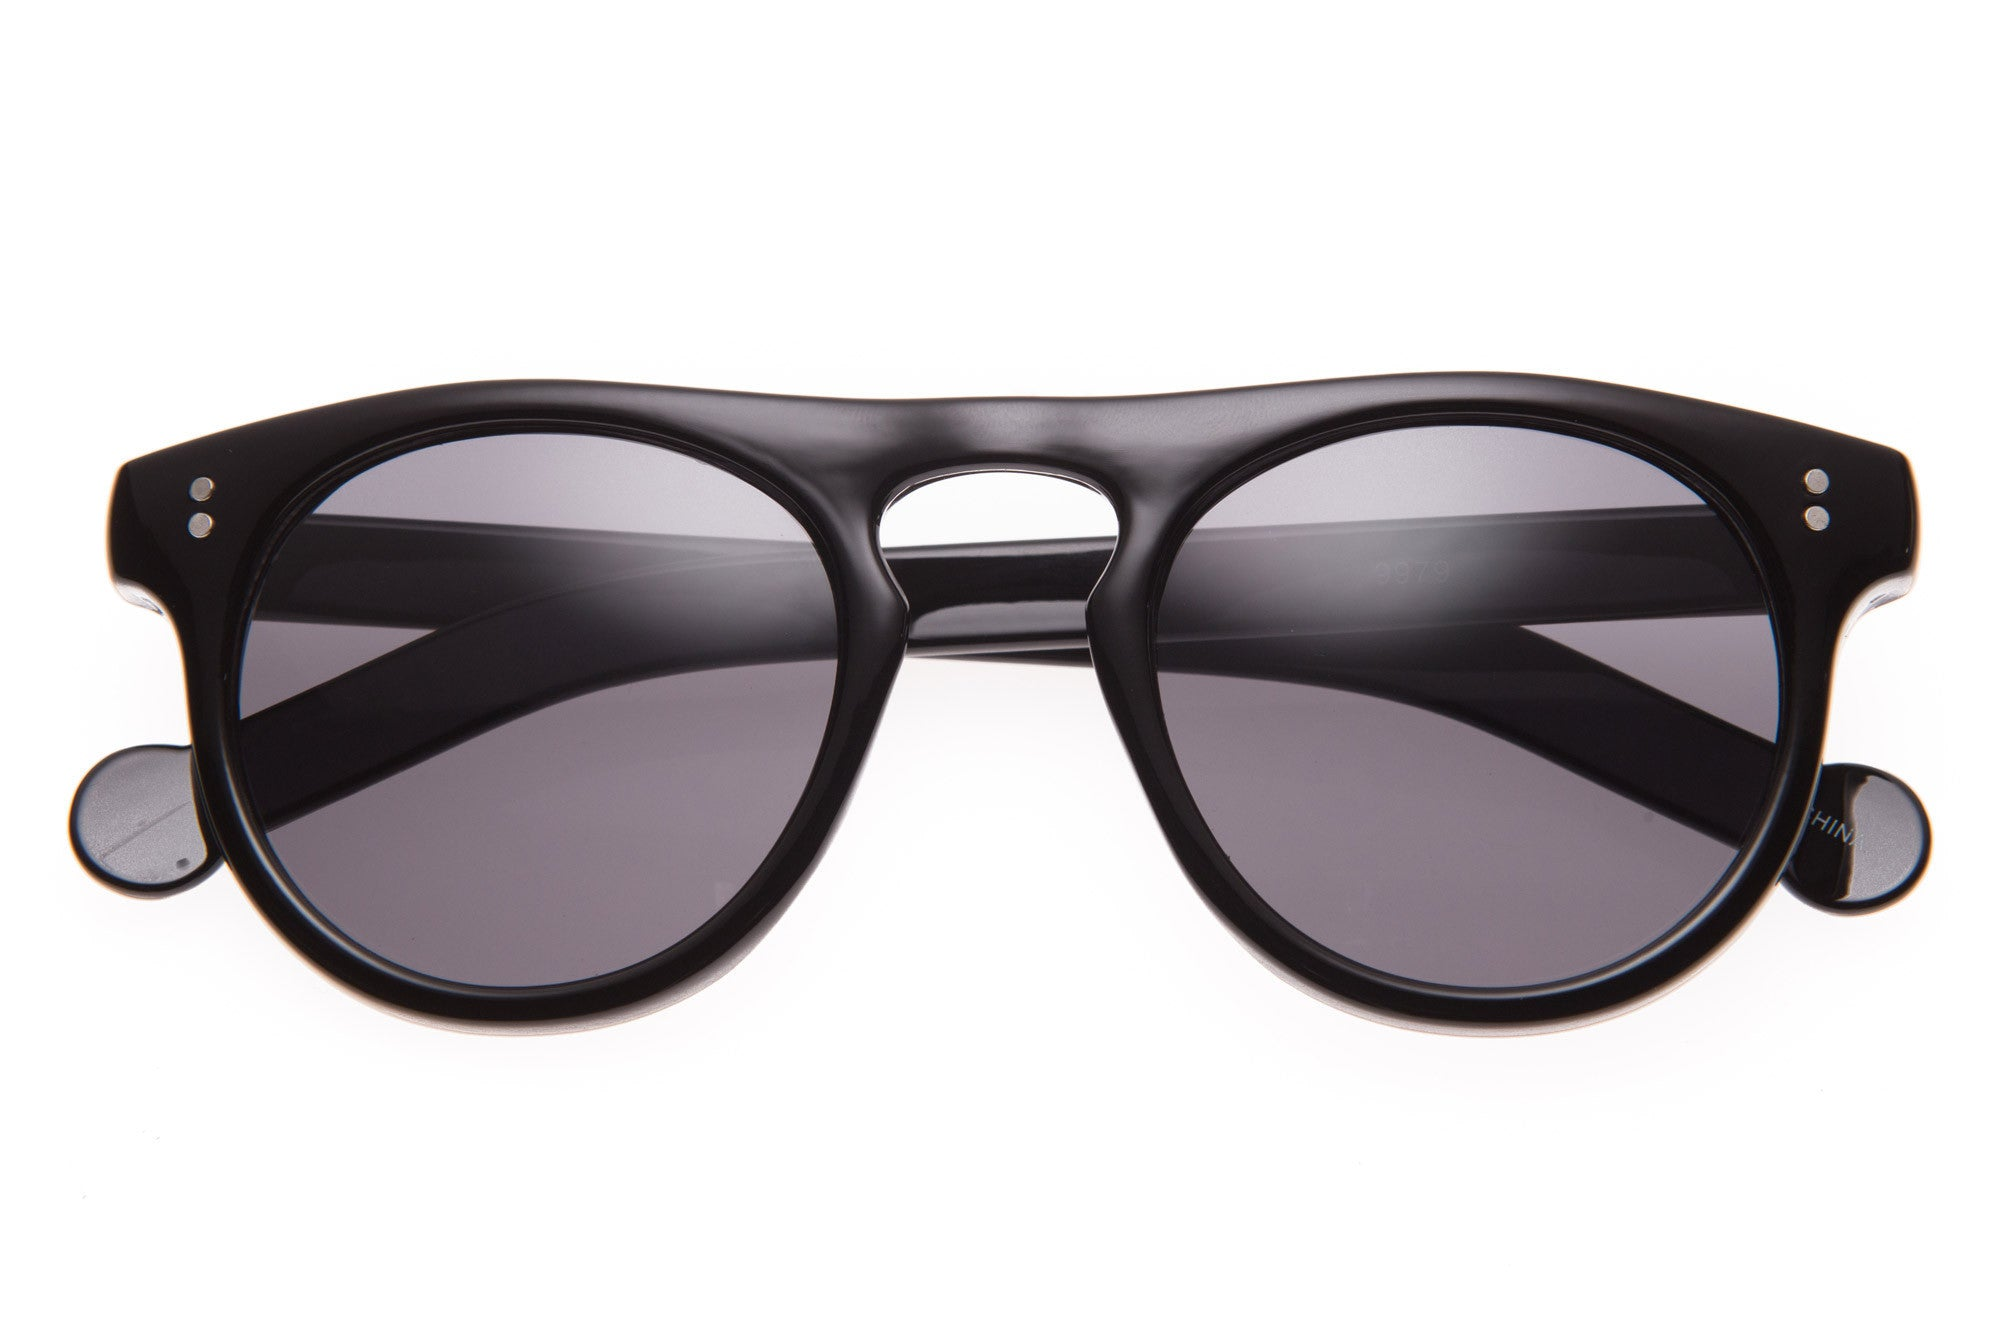 Carmen Rounded Bridge Sunglasses